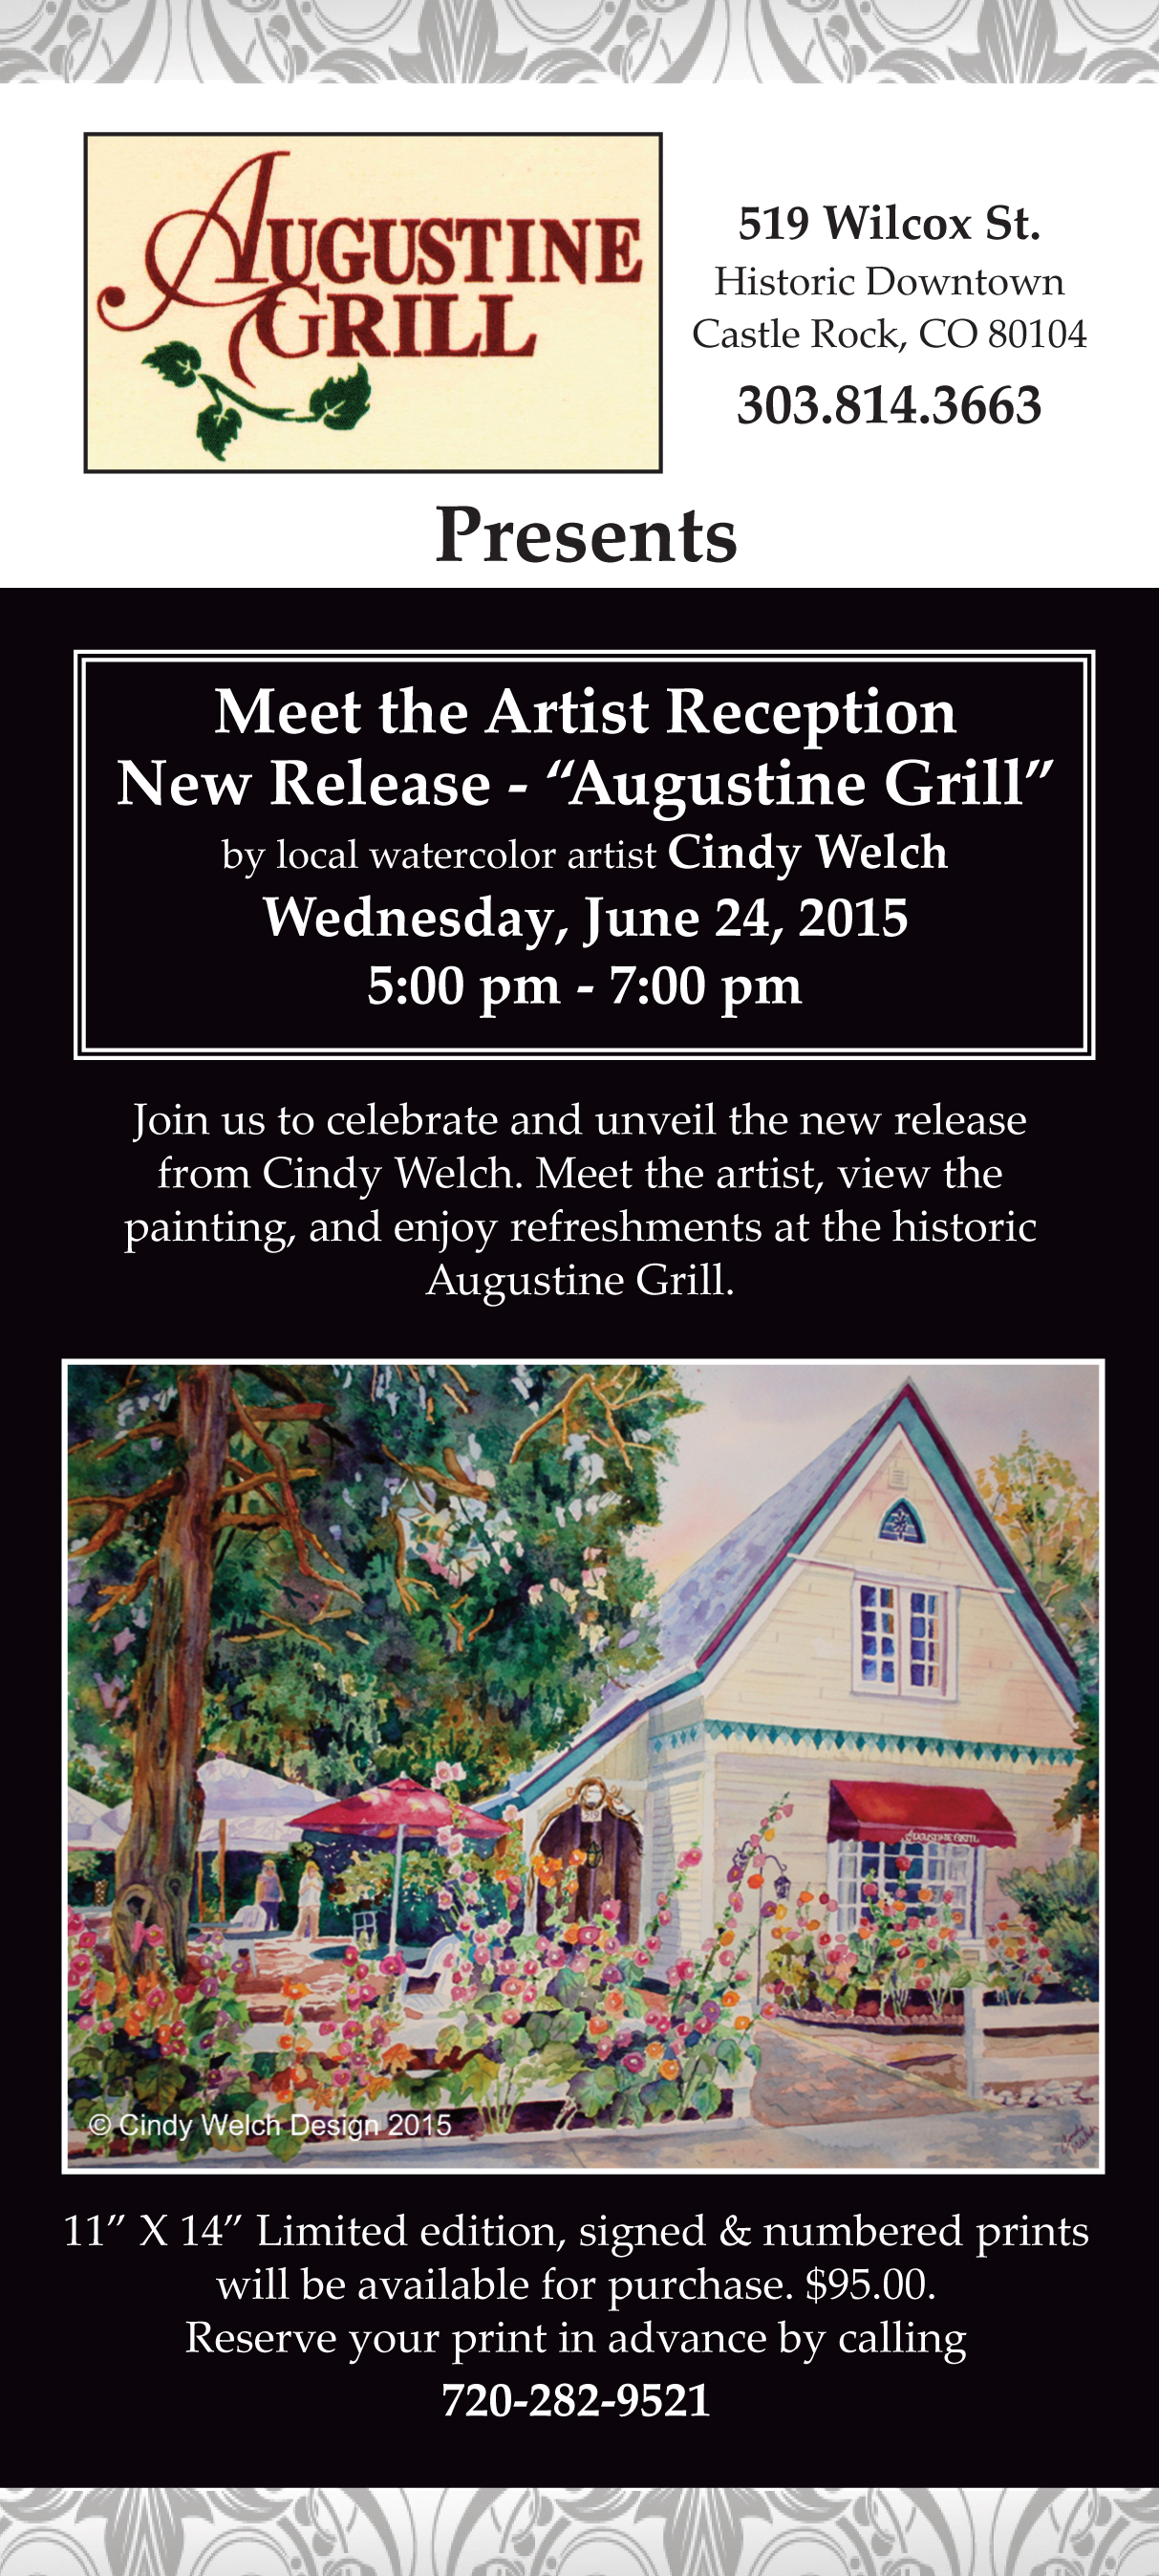 "Meet the Artist Reception-New Release ""Augustine Grill"" June 24th"